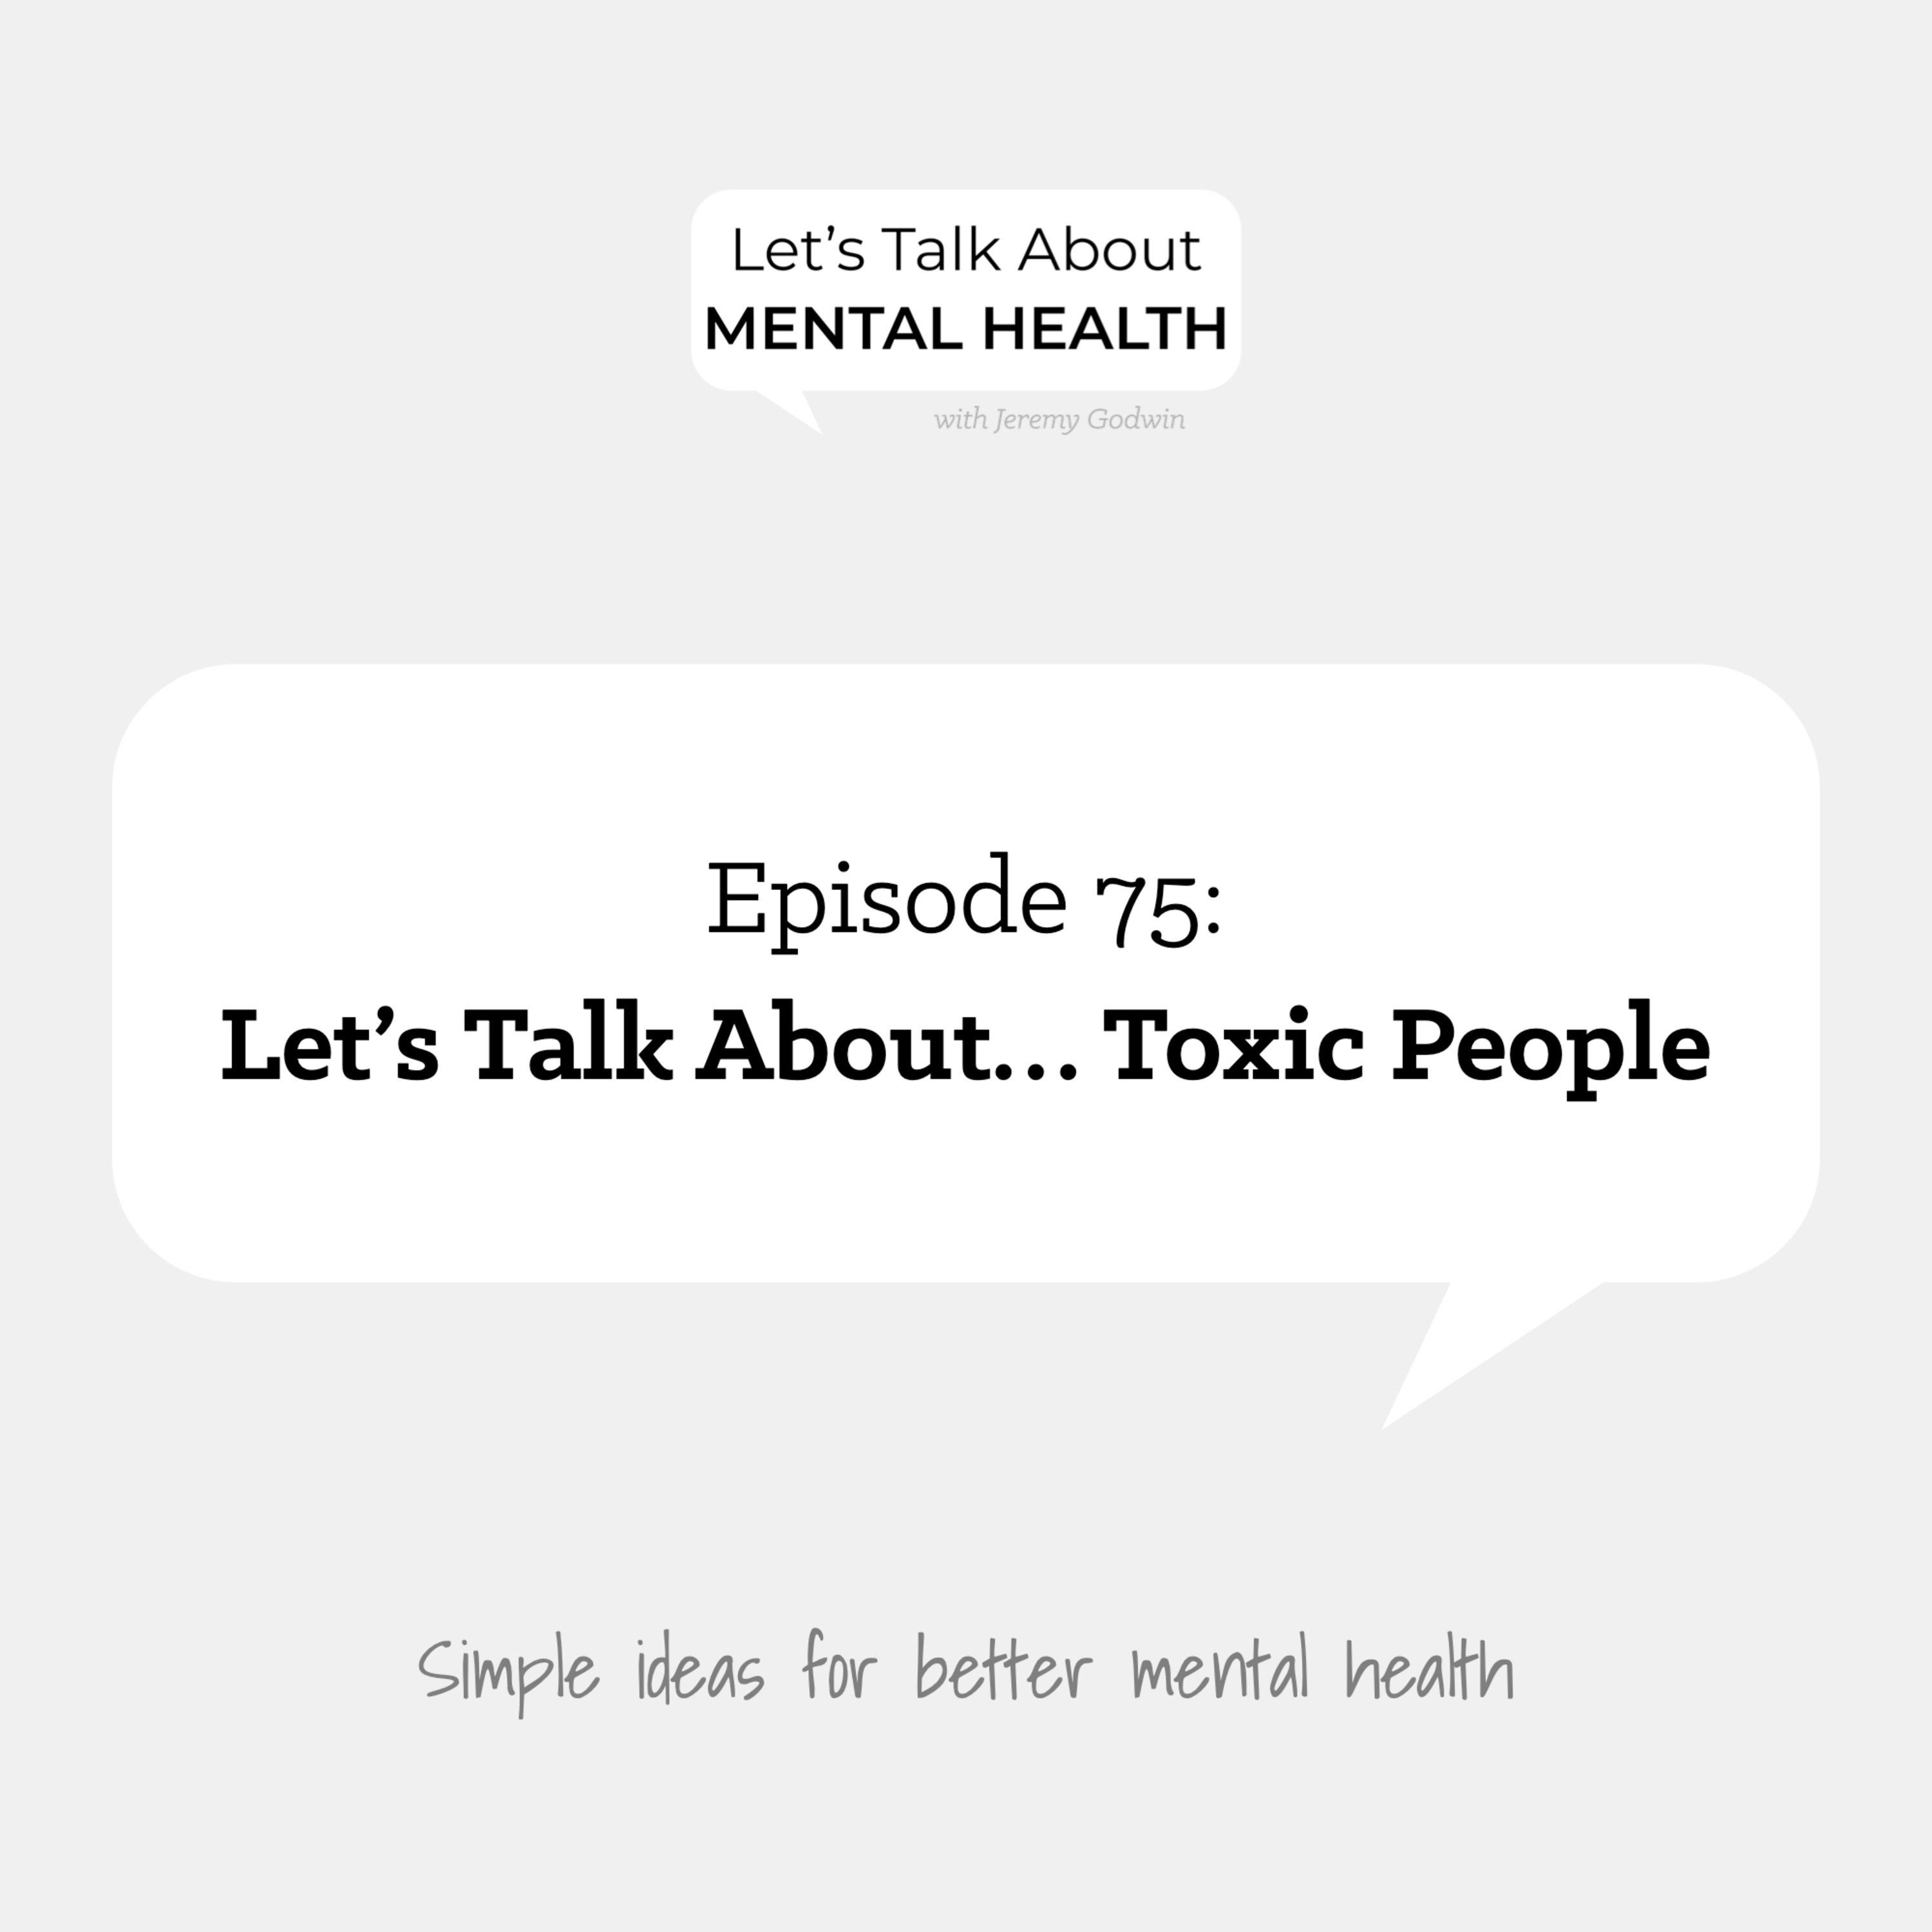 Let's Talk About... Toxic People